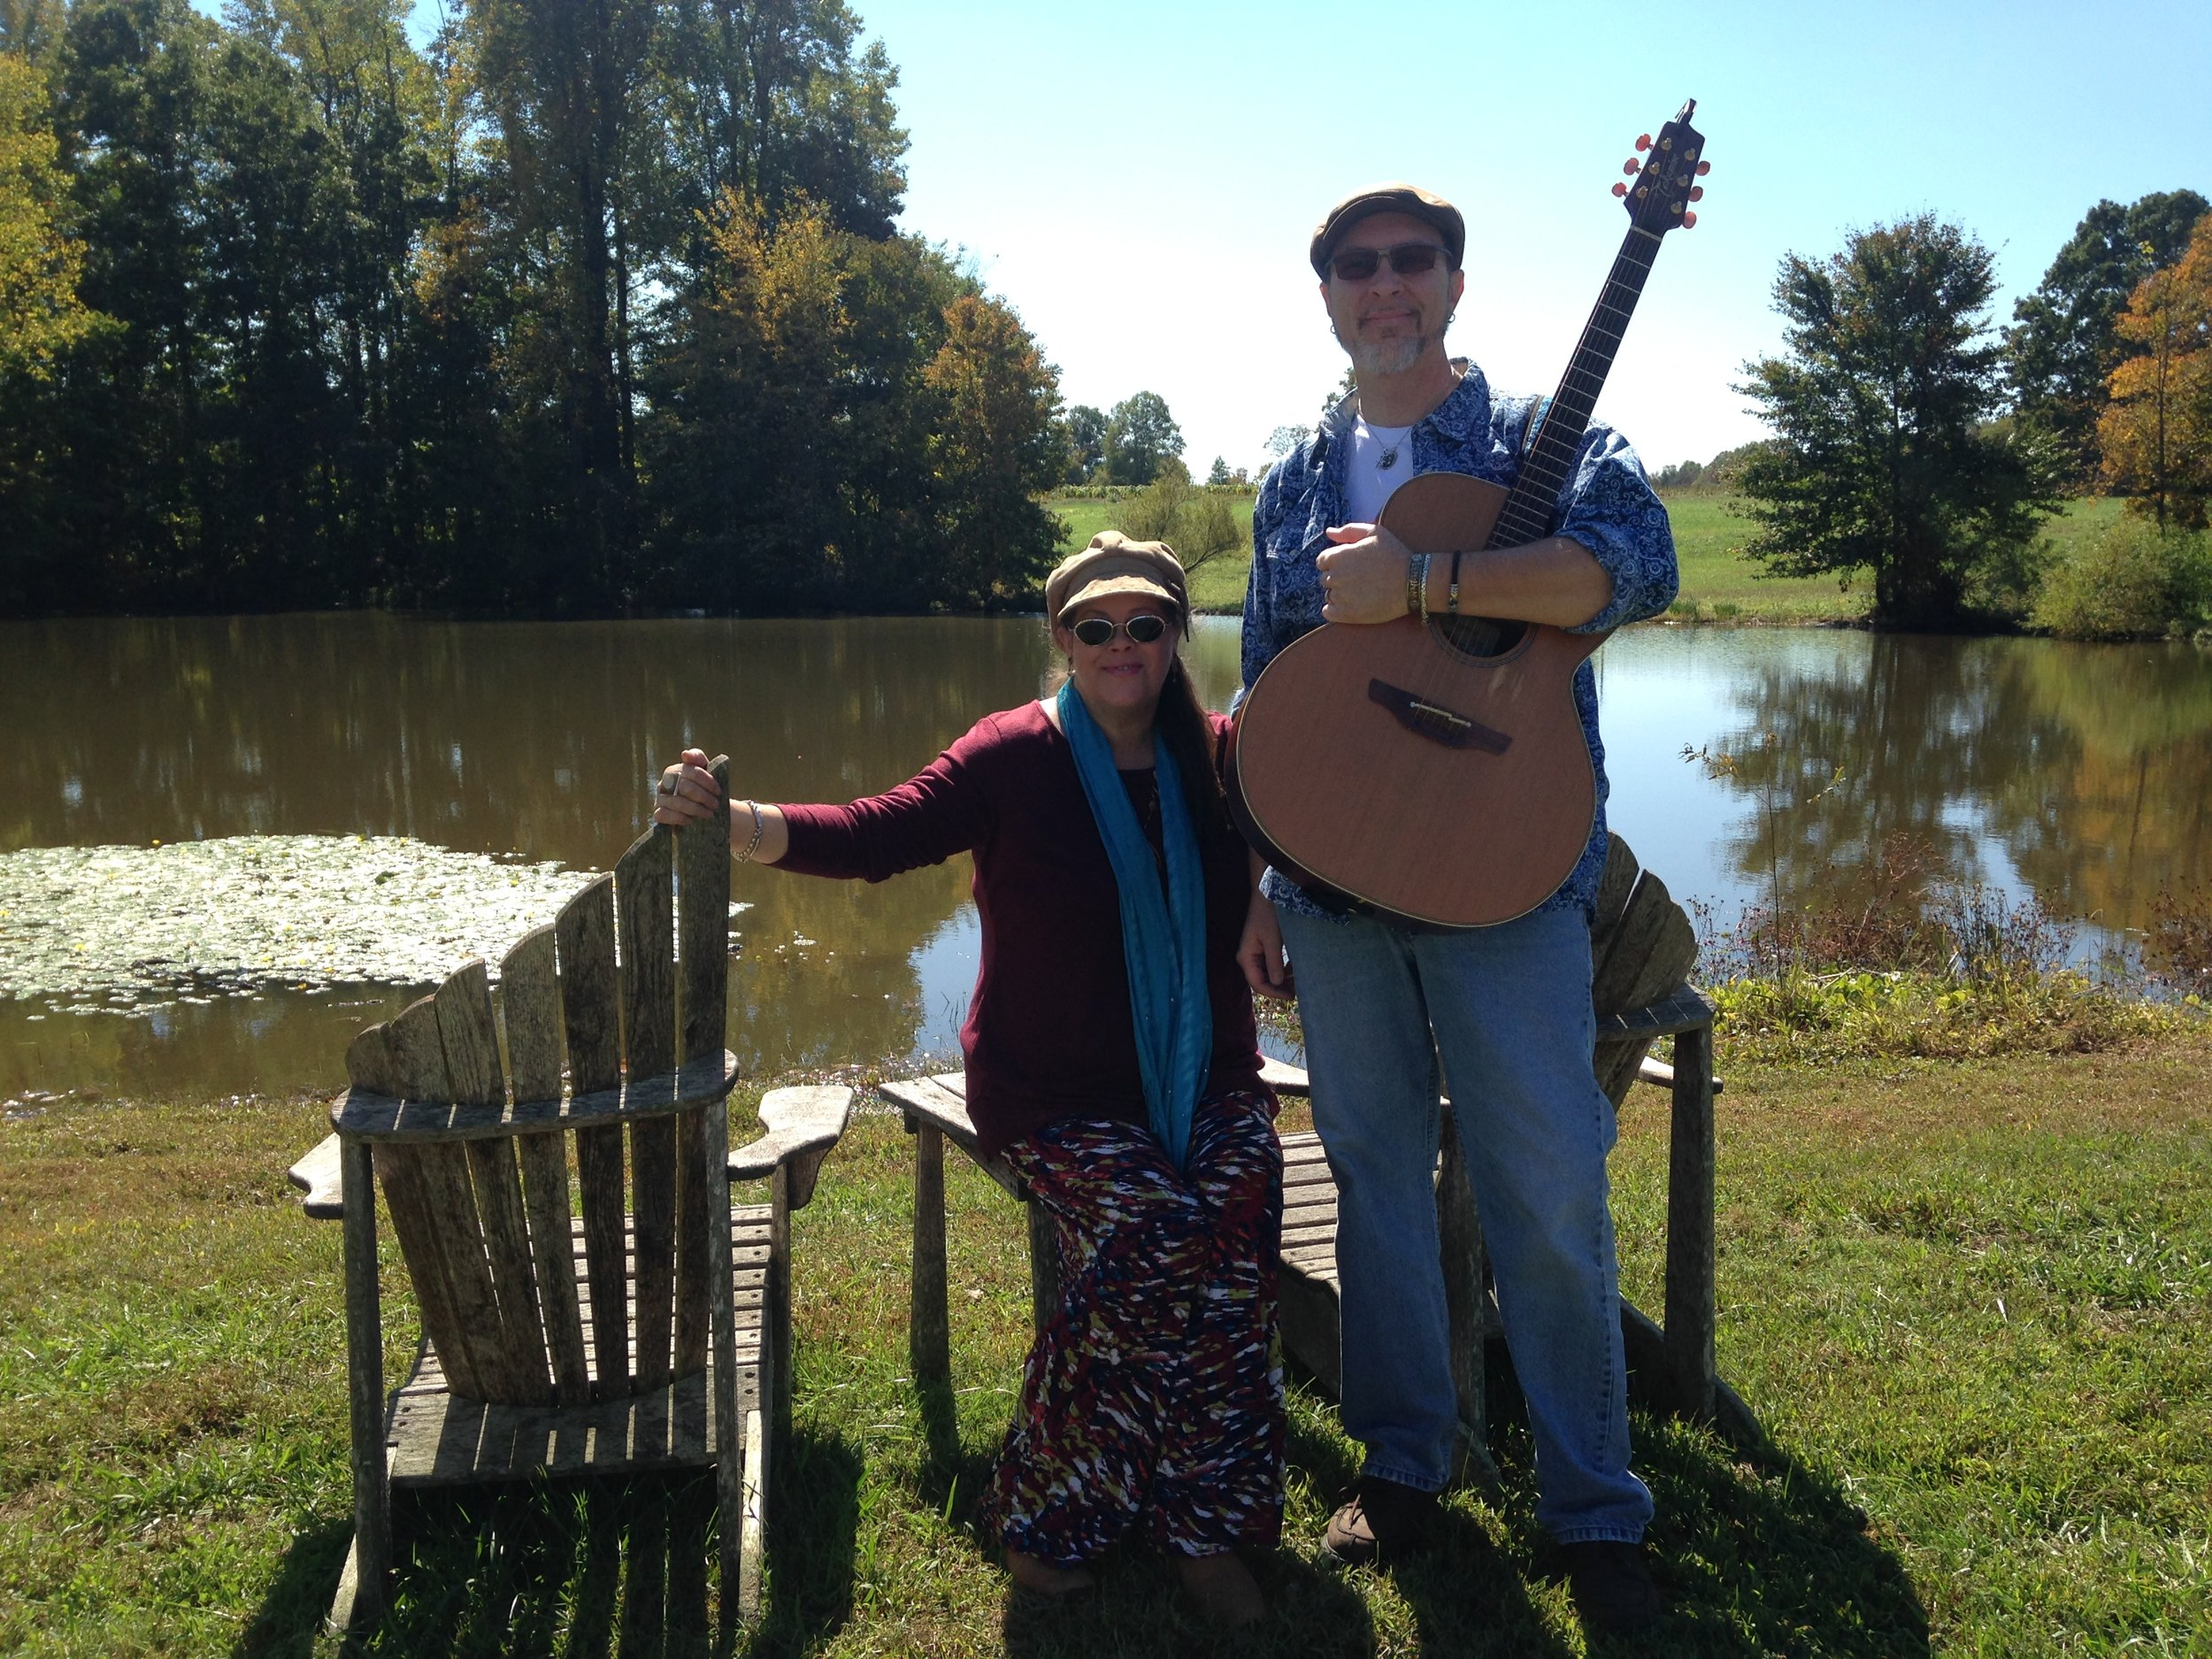 Andrea Templon and Chris Templon pose for a picture during a break. They performed as a duo at The Grove Winery, Gibsonville, North Carolina for their Fall Food Truck Festival!